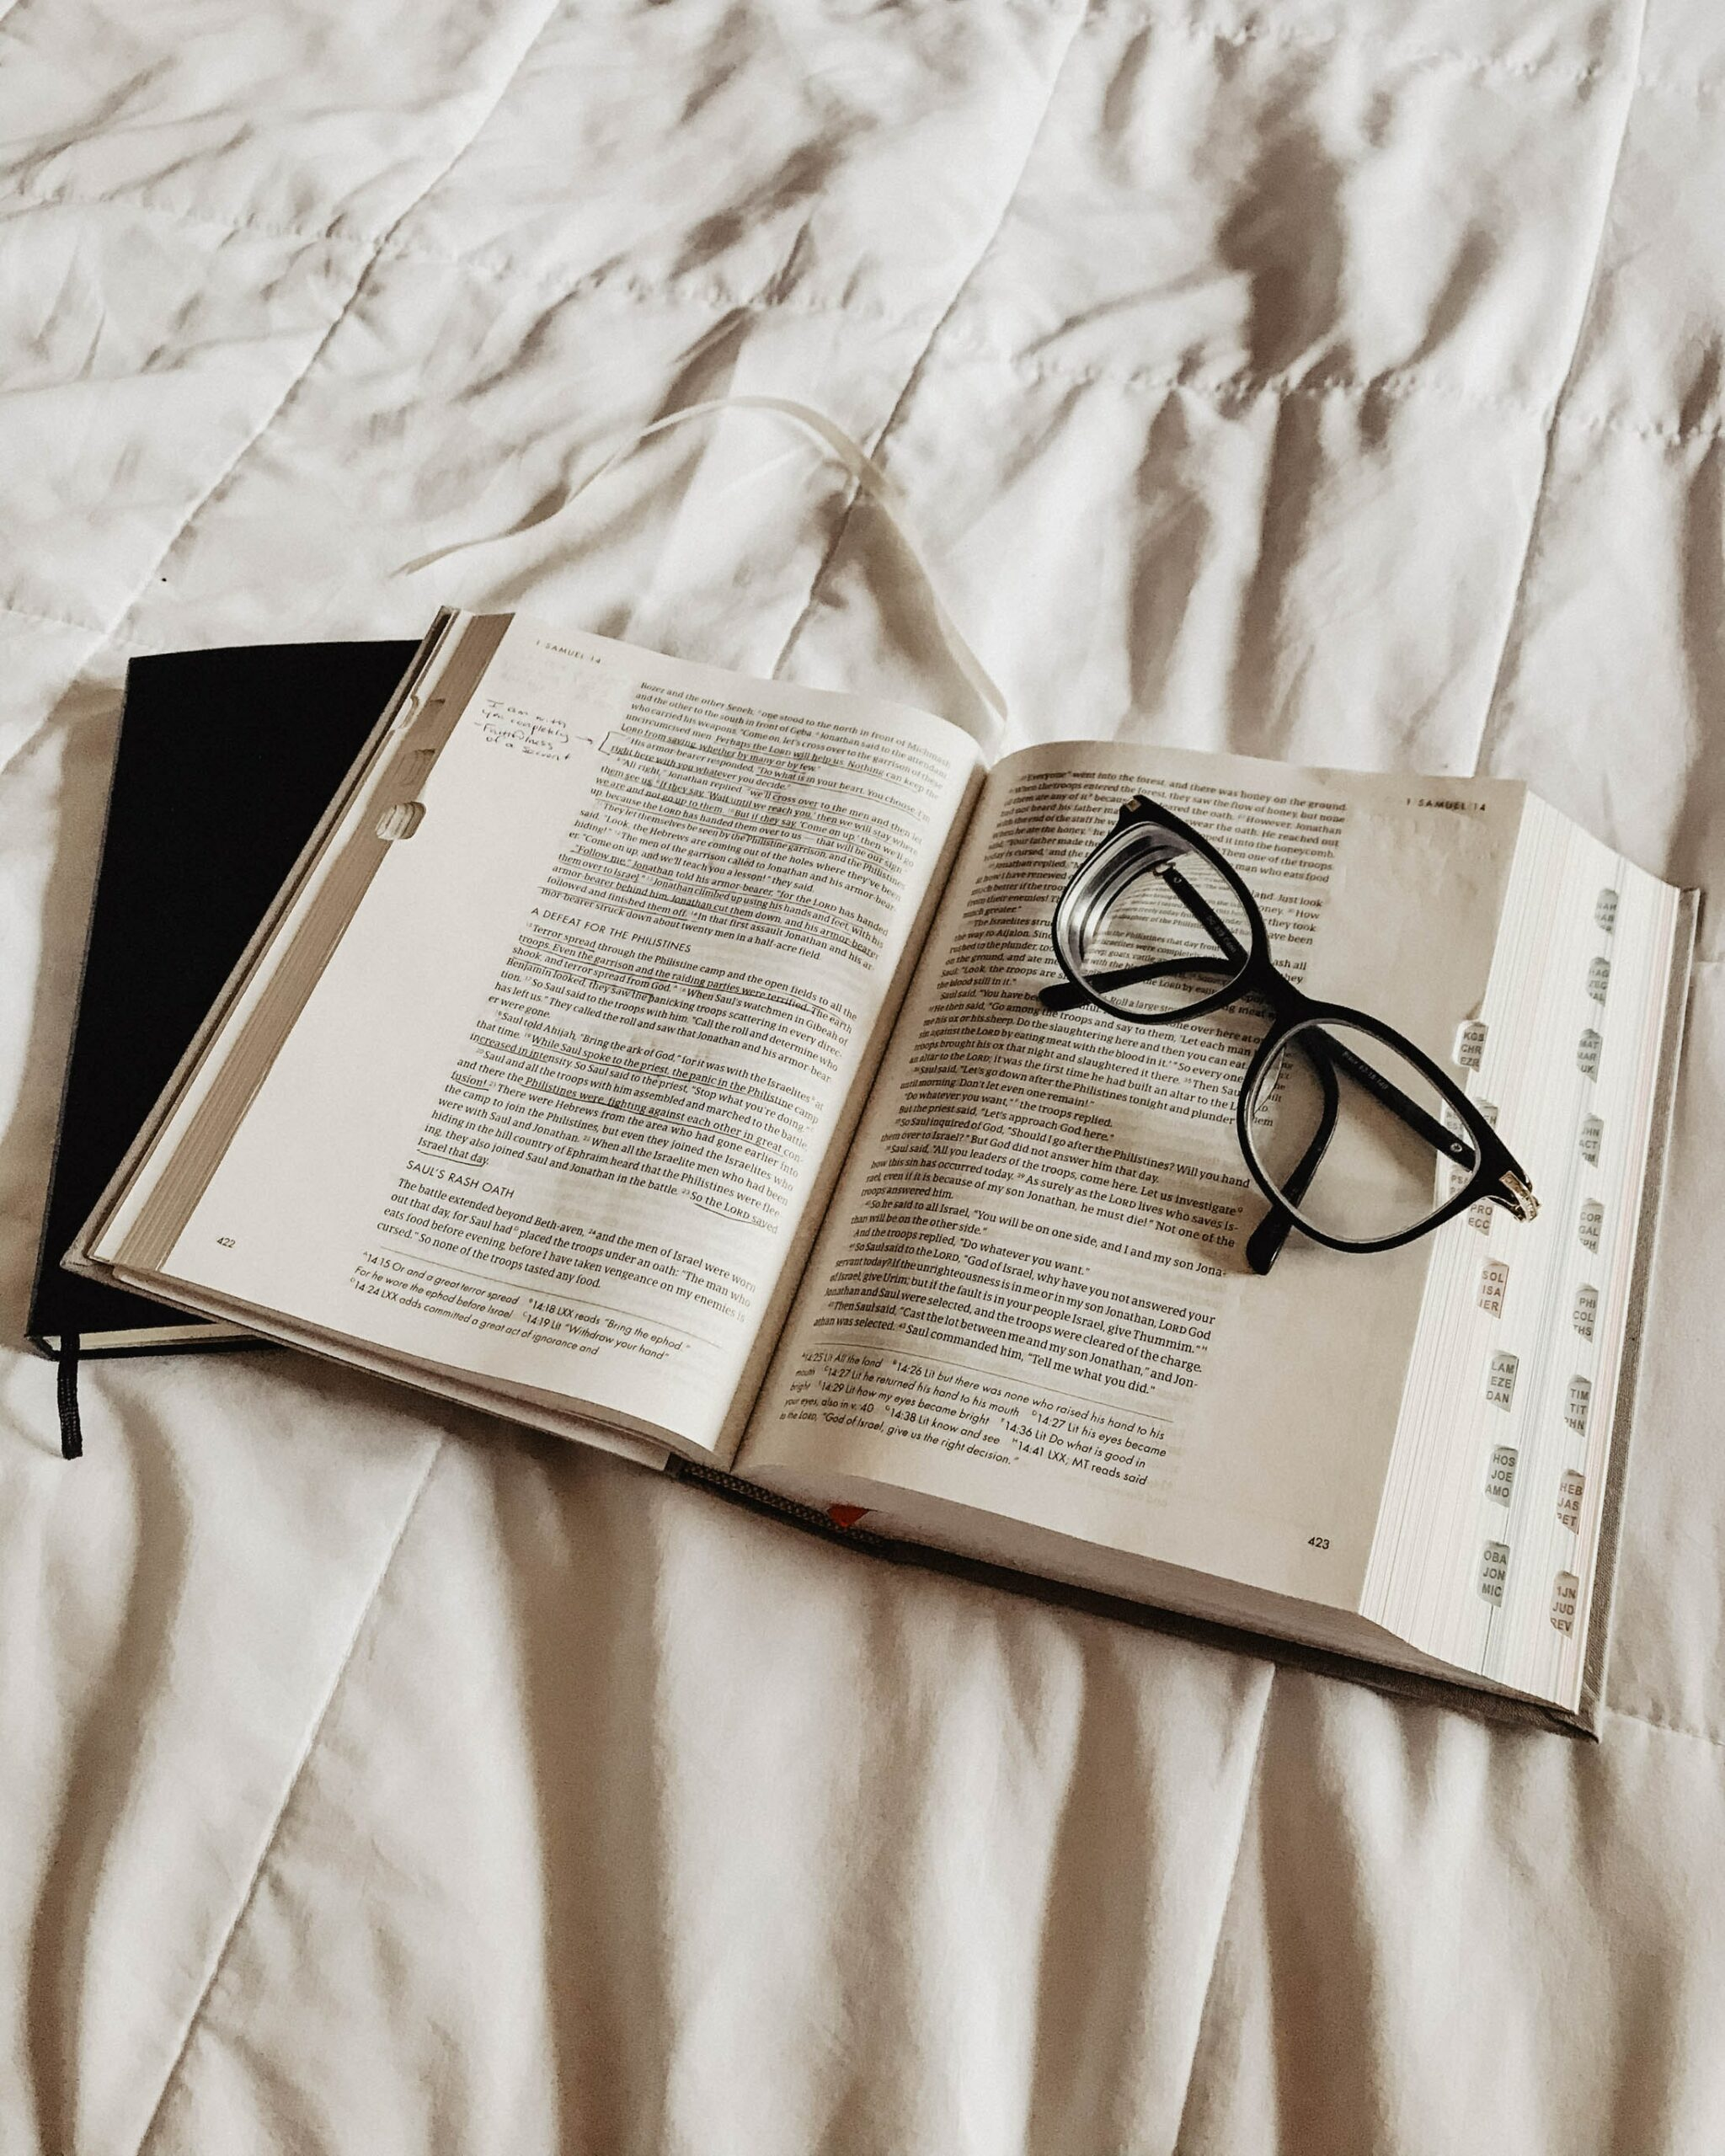 A bible with glasses resting on top of it - keeping a faith, a tip for a happier life